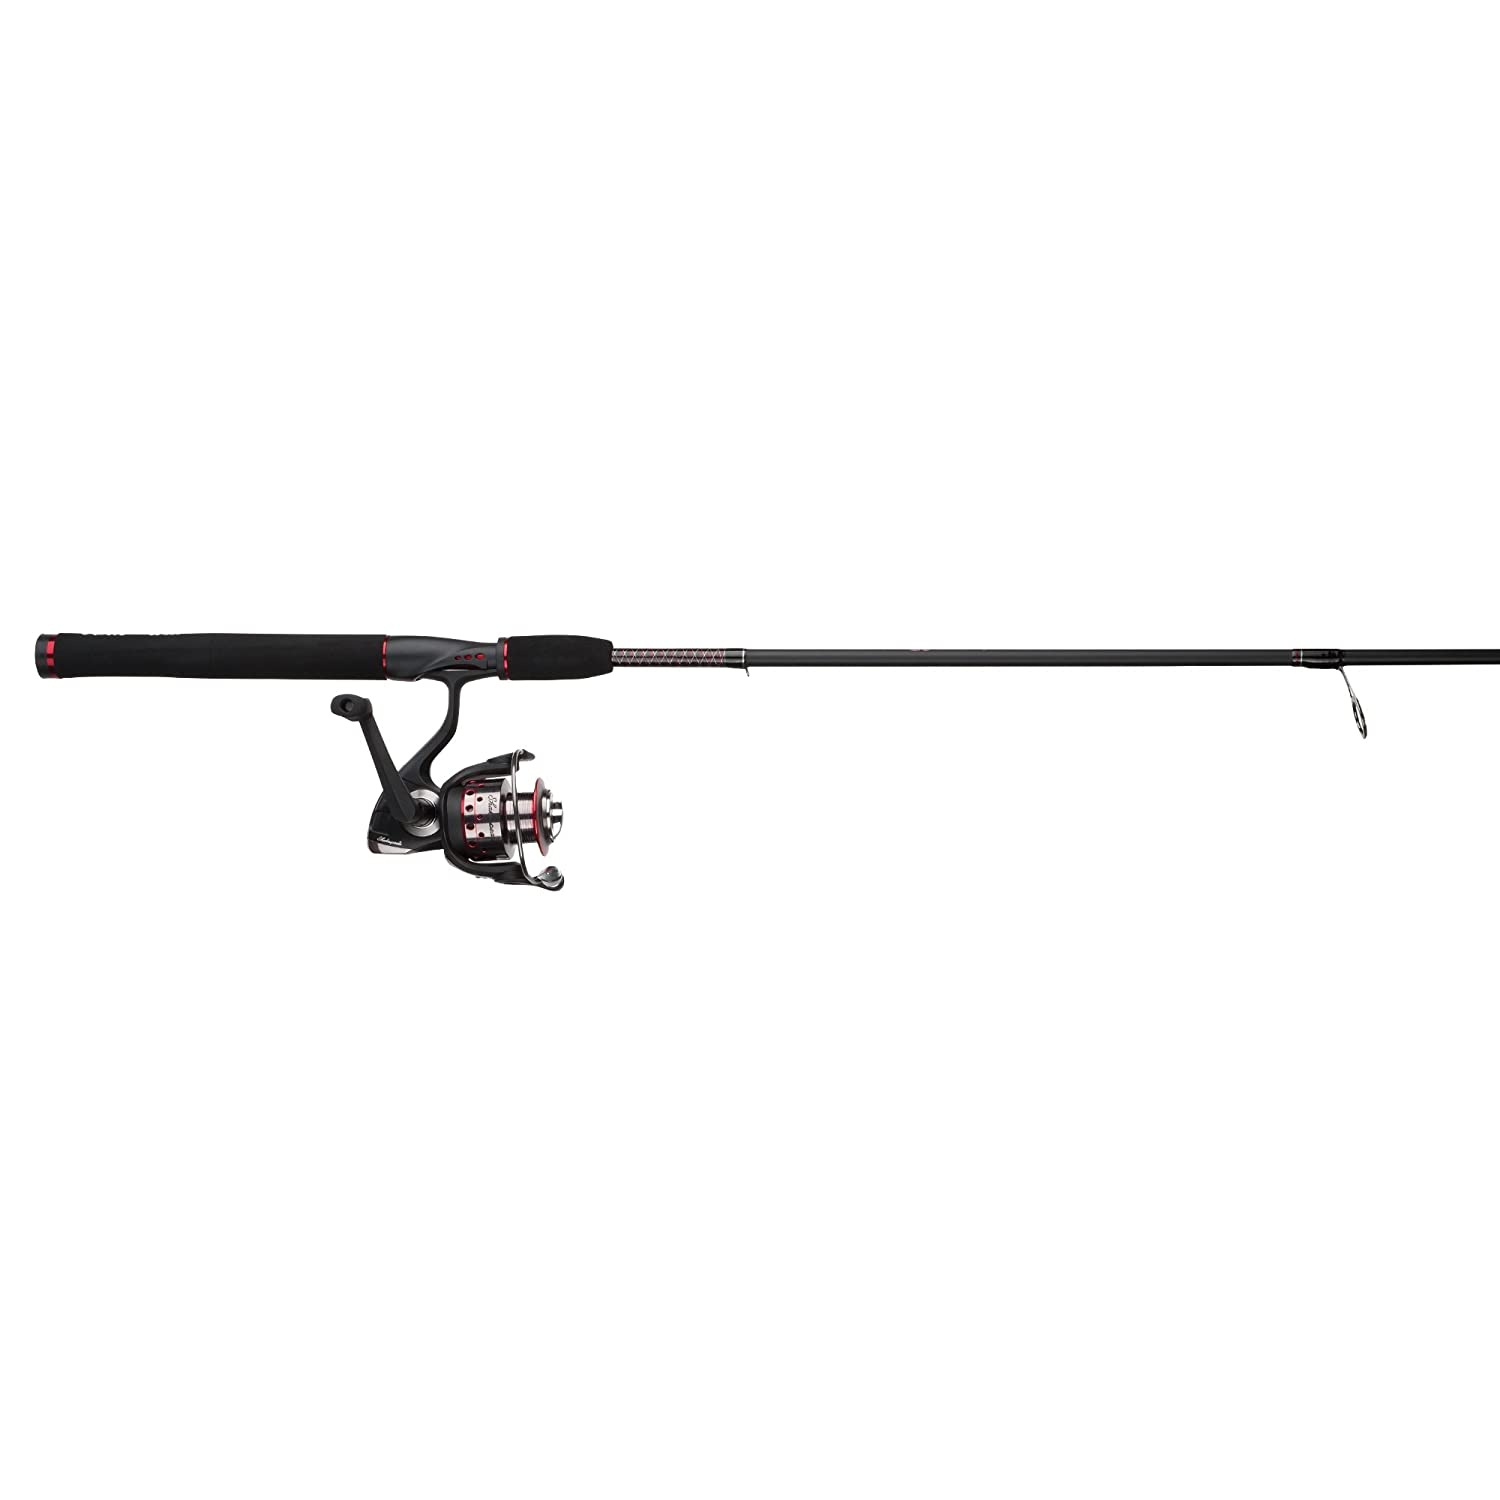 "Shakespeare Ugly Stik GX2 4'8"" Ultralight"